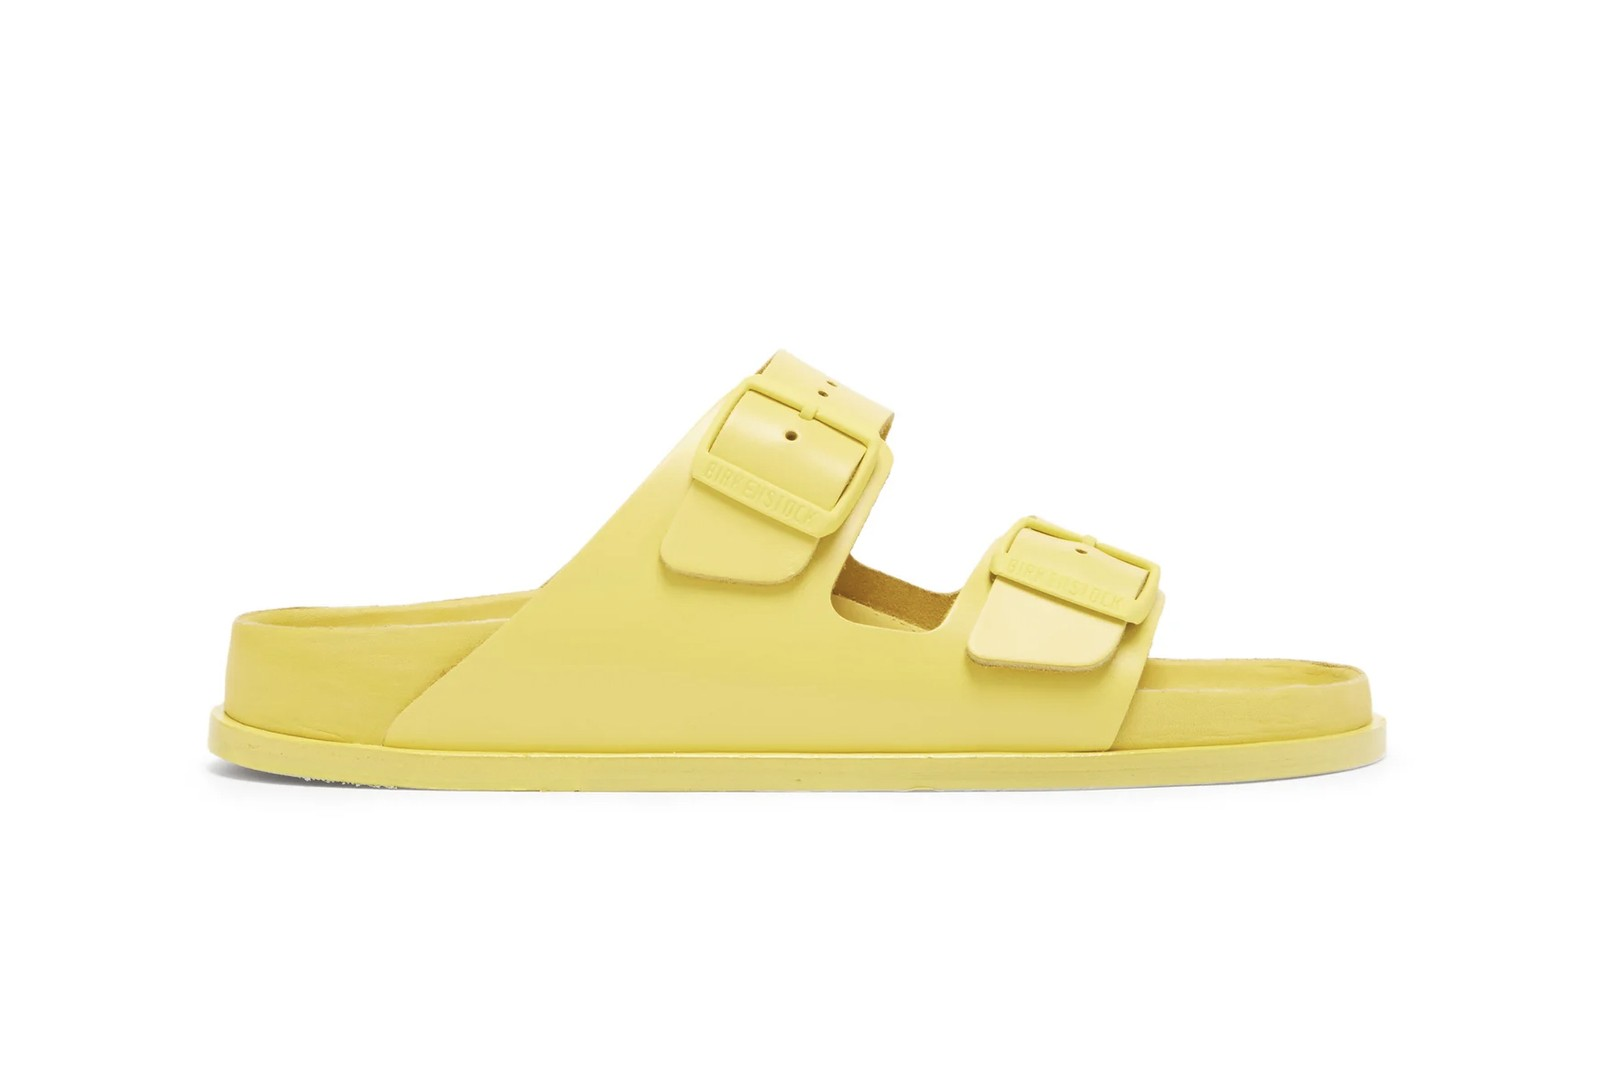 Pantone Color of the Year 2021 Best Footwear Illuminate Yellow Ultimate Gray Gucci Prada Bottega Veneta Amina Muaddi Nike